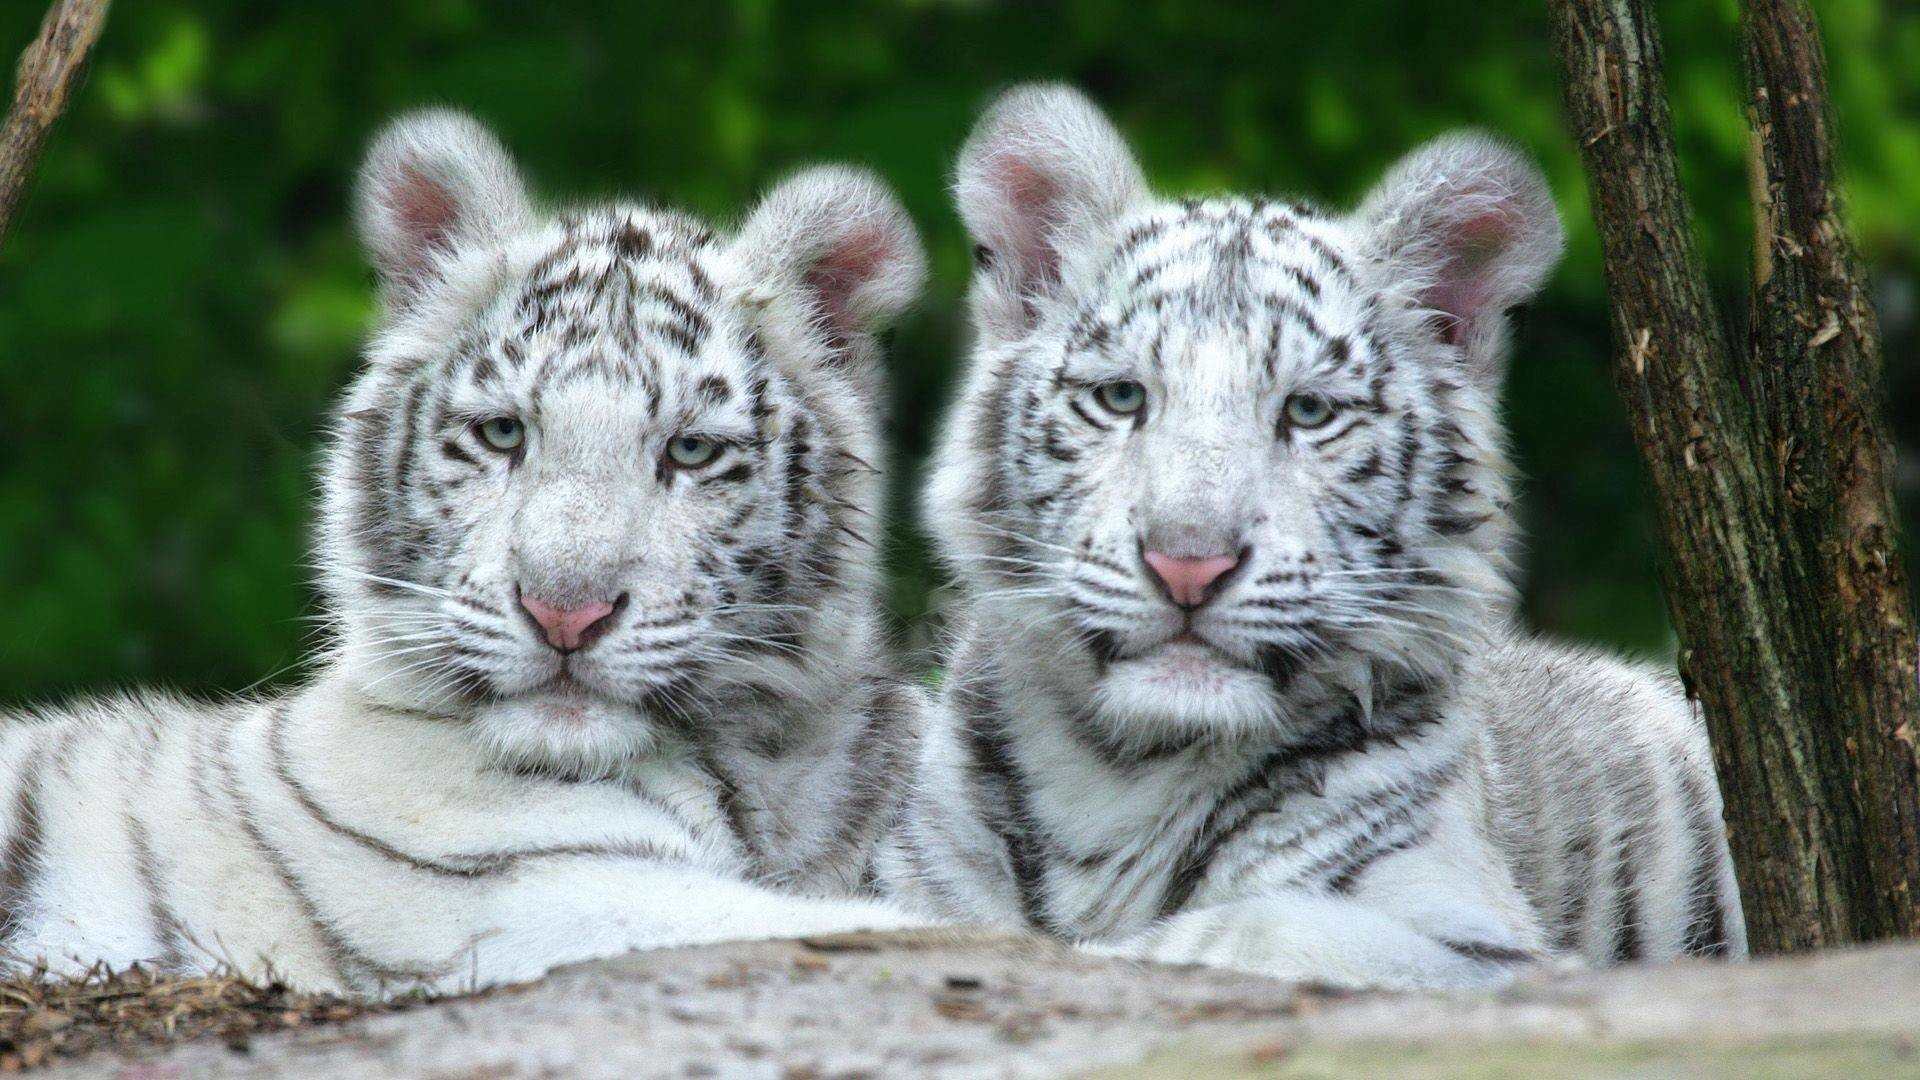 Amazing Wallpaper Marvel White Tiger - 745809-white-tiger-cubs-wallpaper-1920x1080-for-android-50  You Should Have_25218.jpg